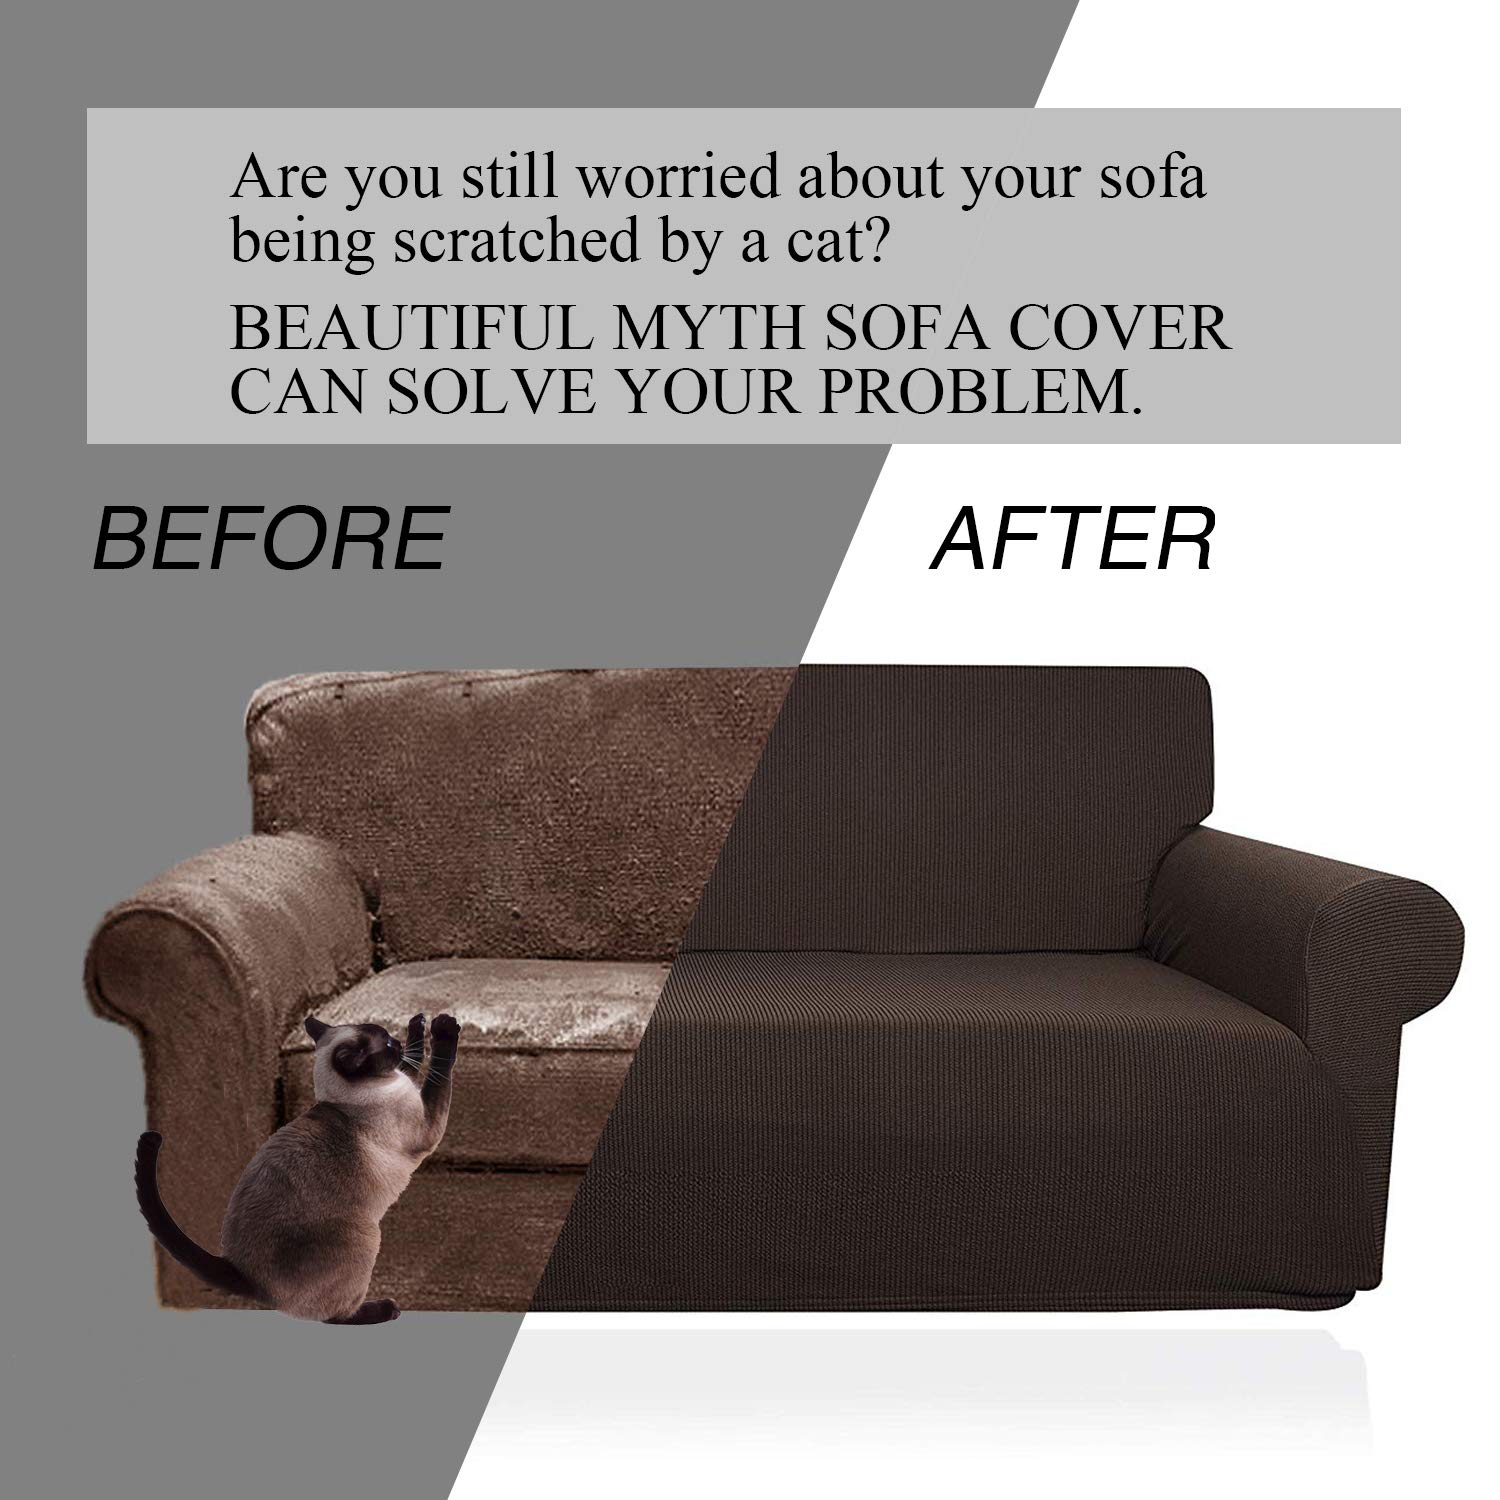 Beautiful Myth Armchair Slipcover Small Checks Knitted Jacquard Sofa Chair Covers Stretch Couch Slipcover Sofa Protection for Living Room Bedroom Dark Brown, Chair